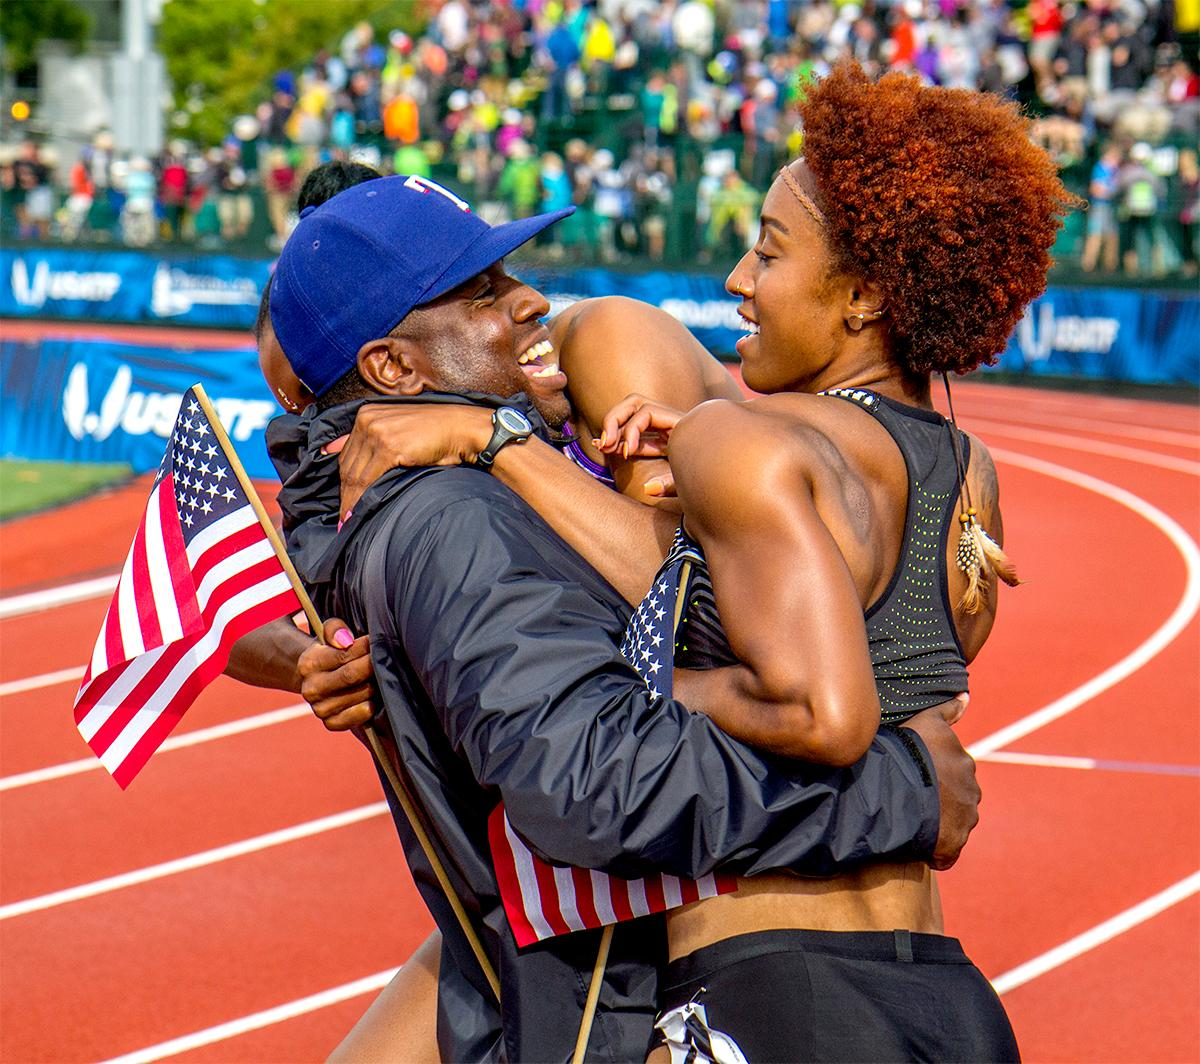 The coach of Brianna Rollins and Nia Ali runs up and embraces them after they took first and third in the 100 meter steeplechase. Photo by August Frank, Oregon News Lab